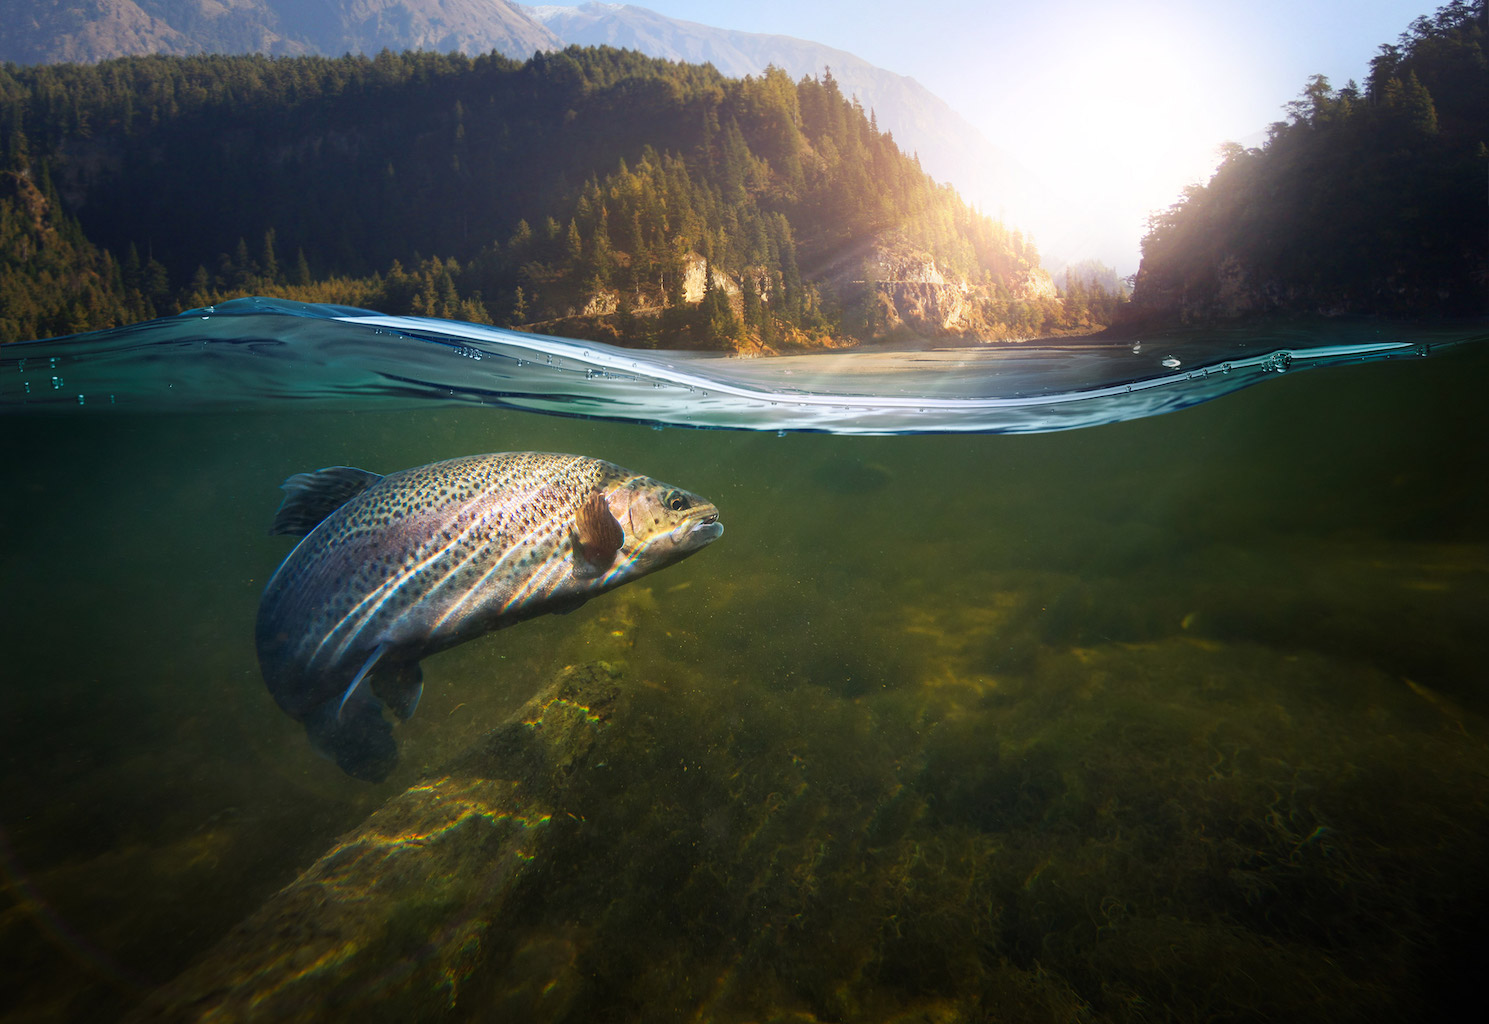 Trout swimming in water